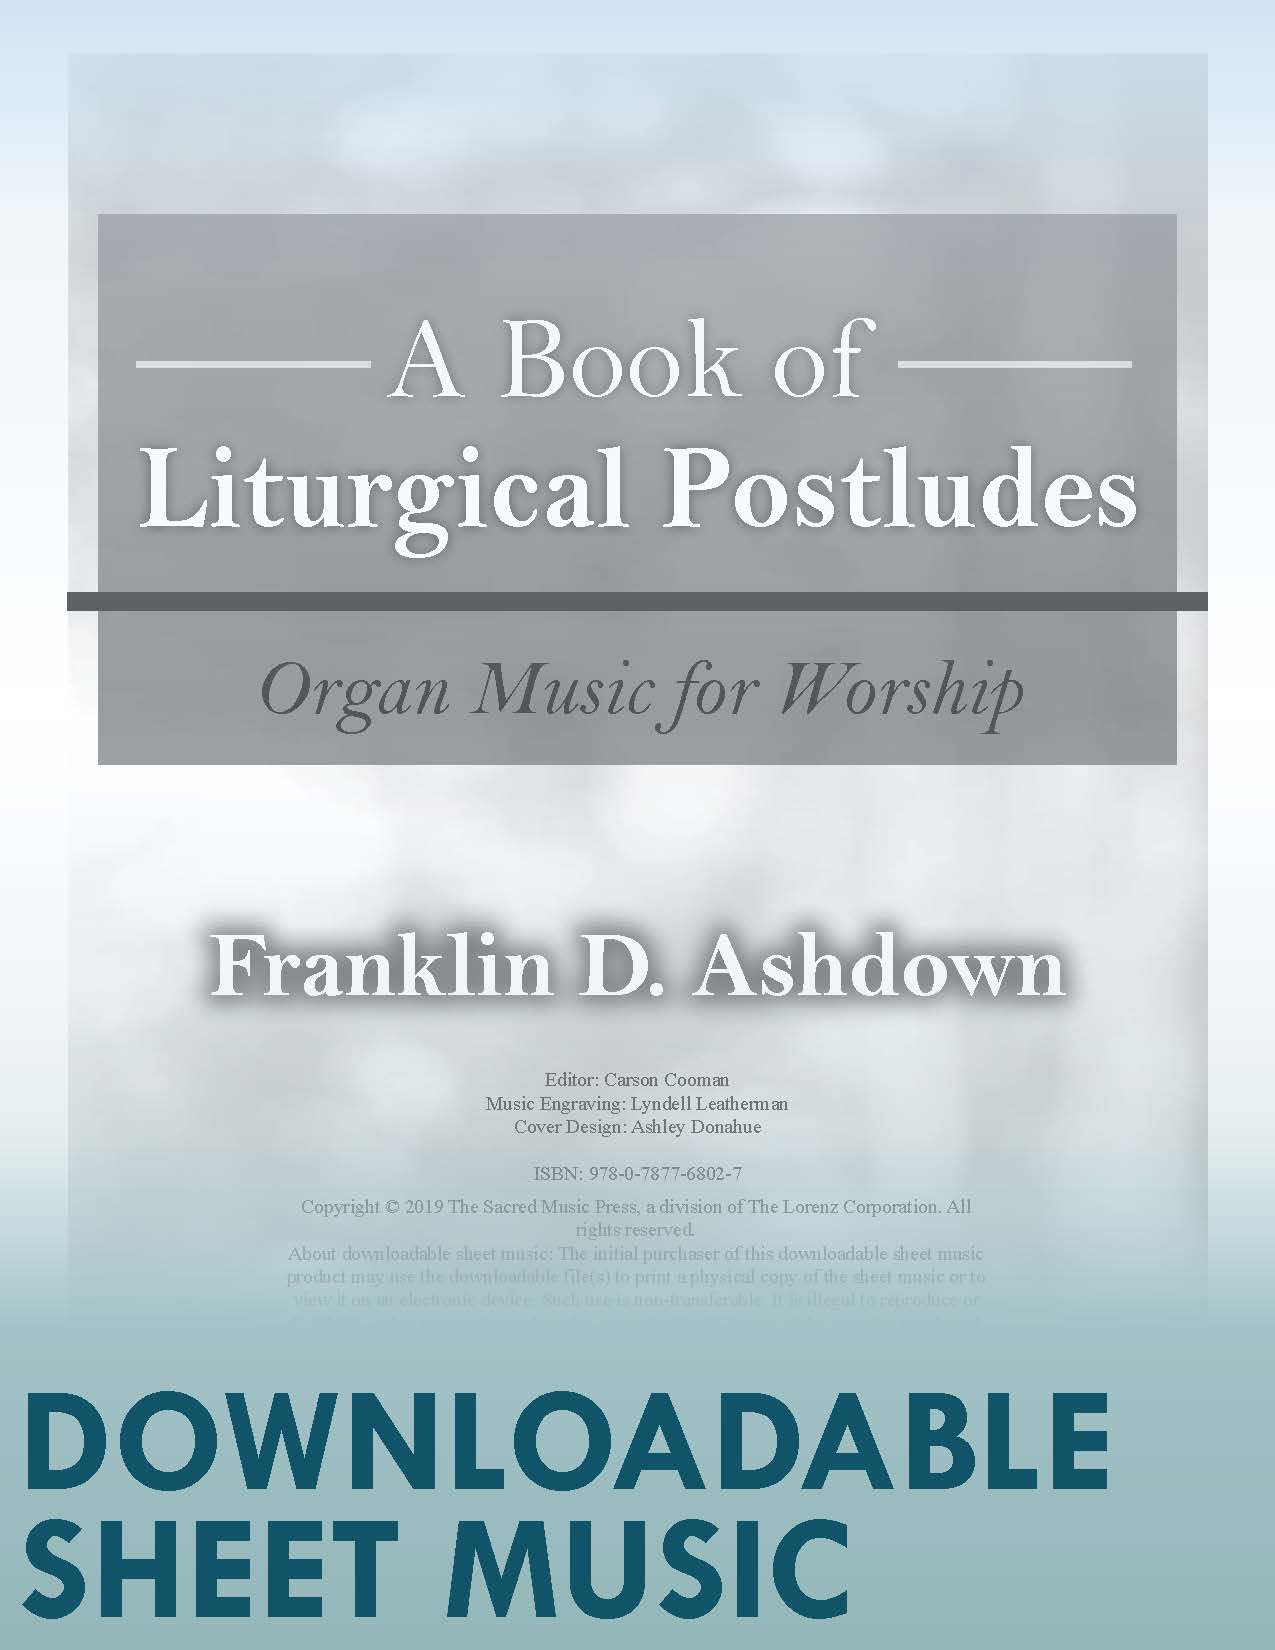 A Book of Liturgical Postludes - Digital Download